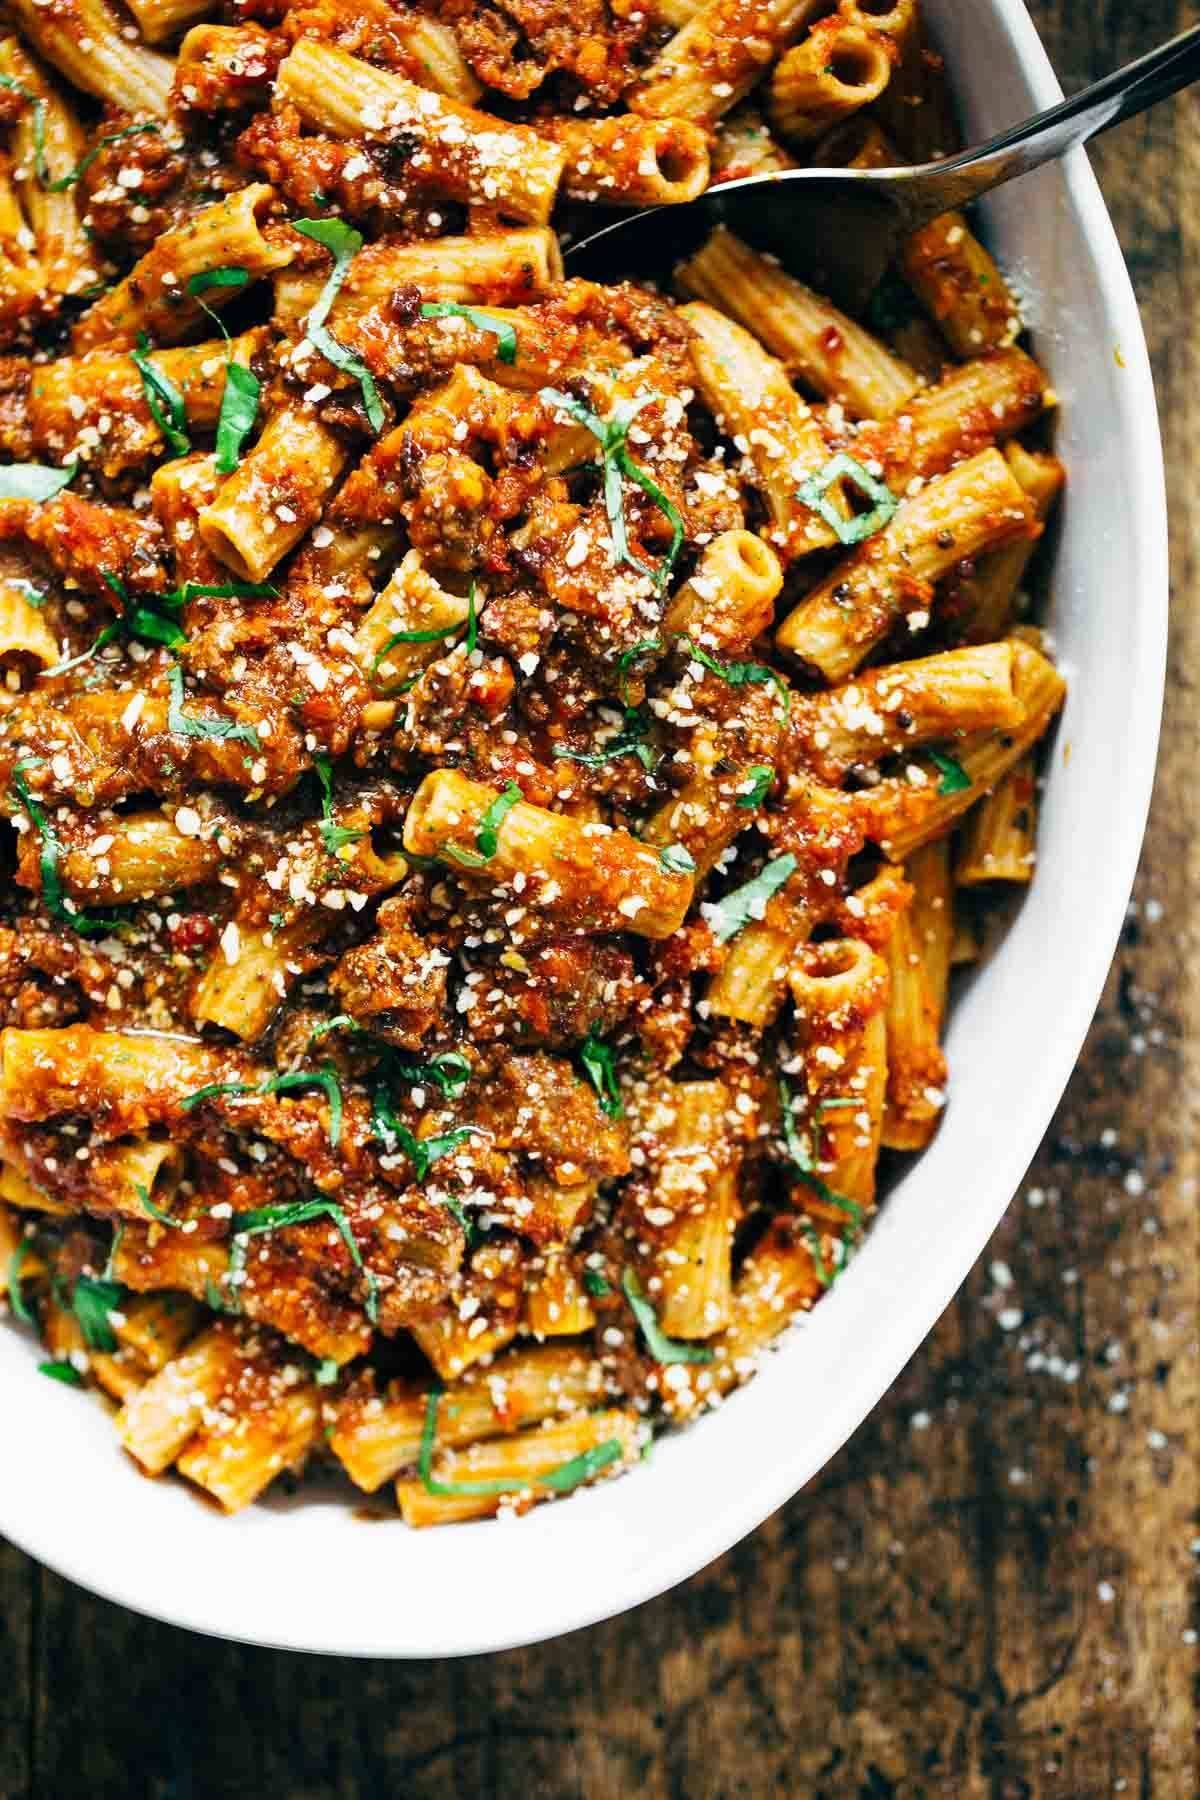 Spicy Sausage Rigatoni Recipe - Pinch of Yum